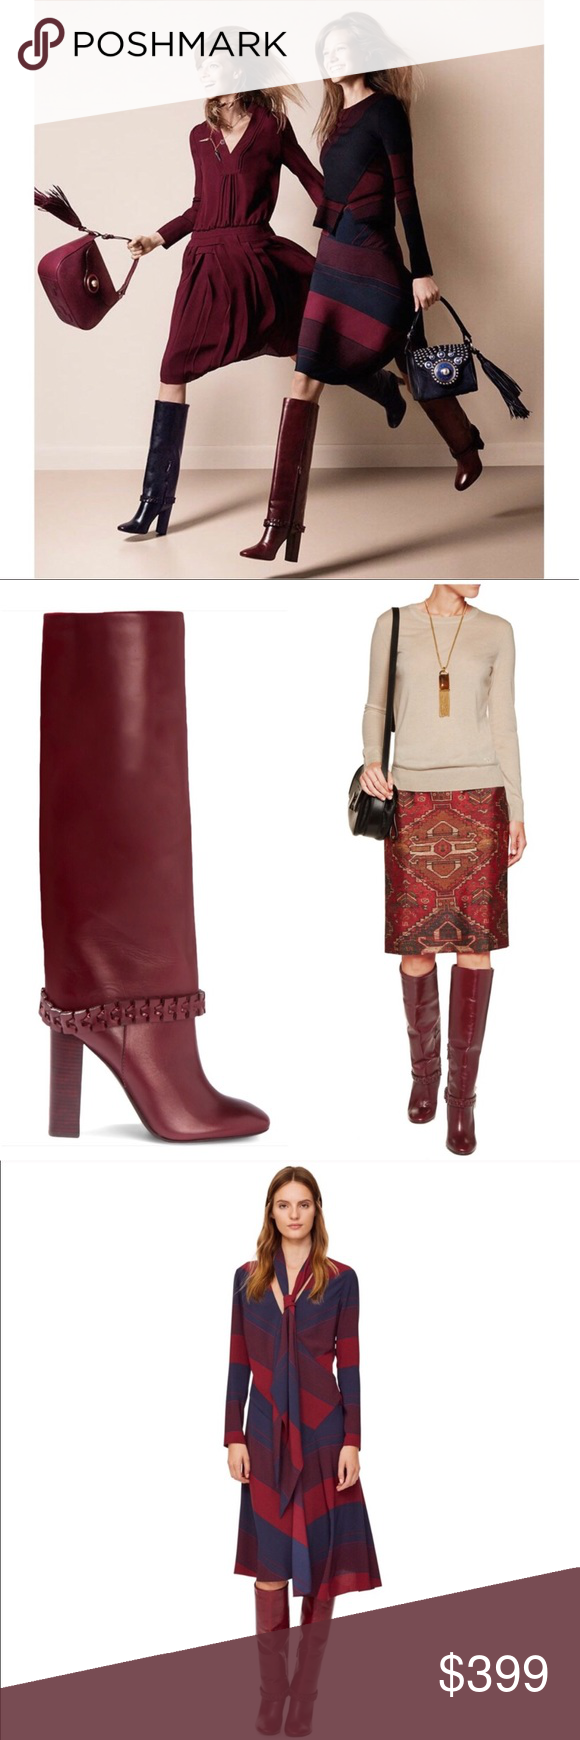 a975a2ae25b5 Stretch Knee High Boots · Tory Burch Sarava Brown Tall Leather Boot New in  box. Have store wear (creasing